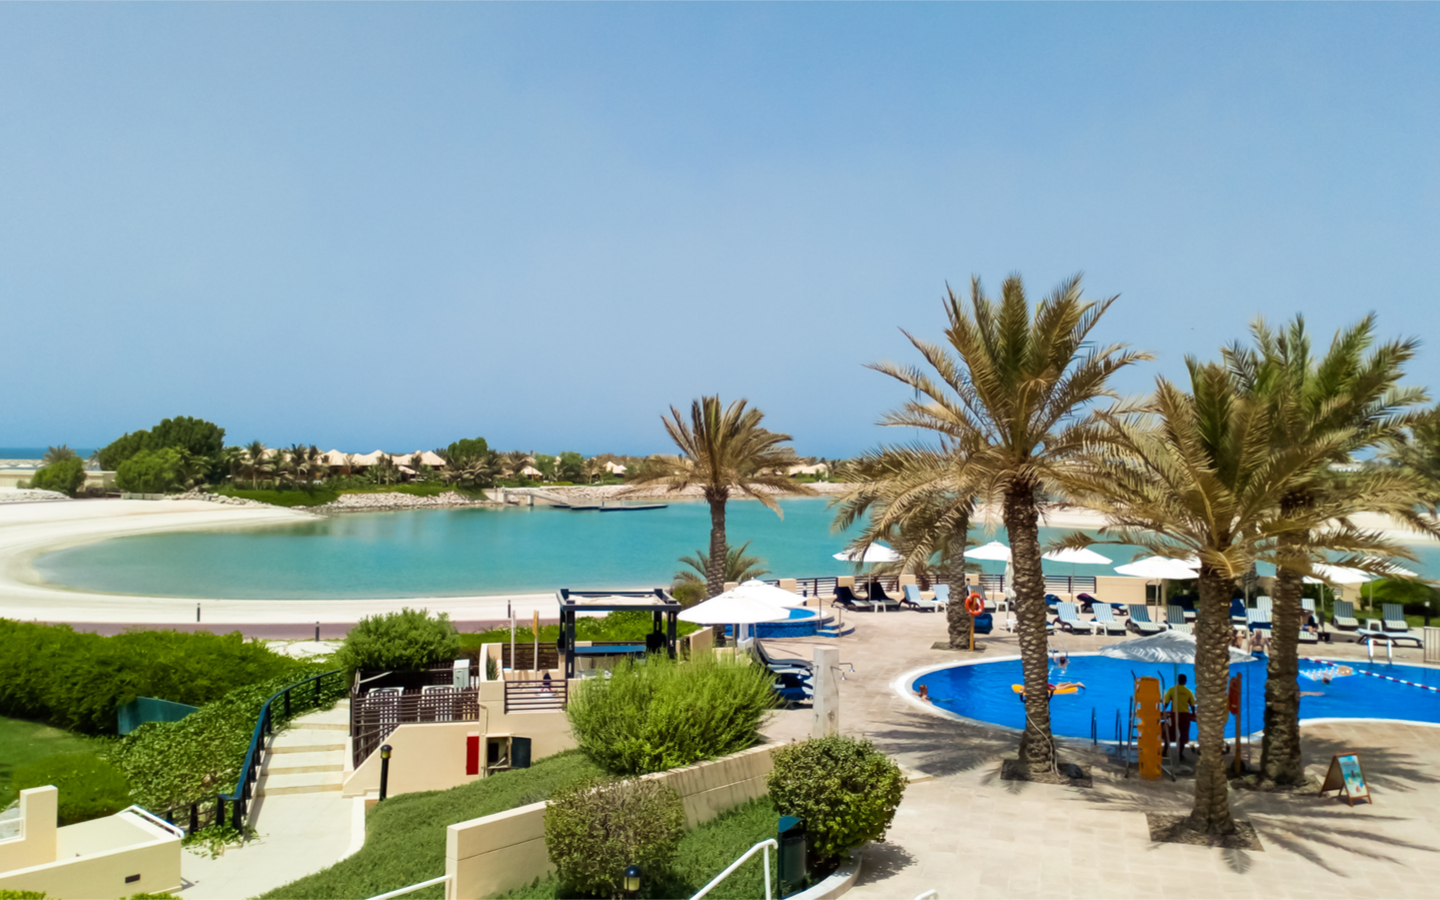 Hilton Al Hamra Beach & Golf Resort is a perfect holiday spot for young couples